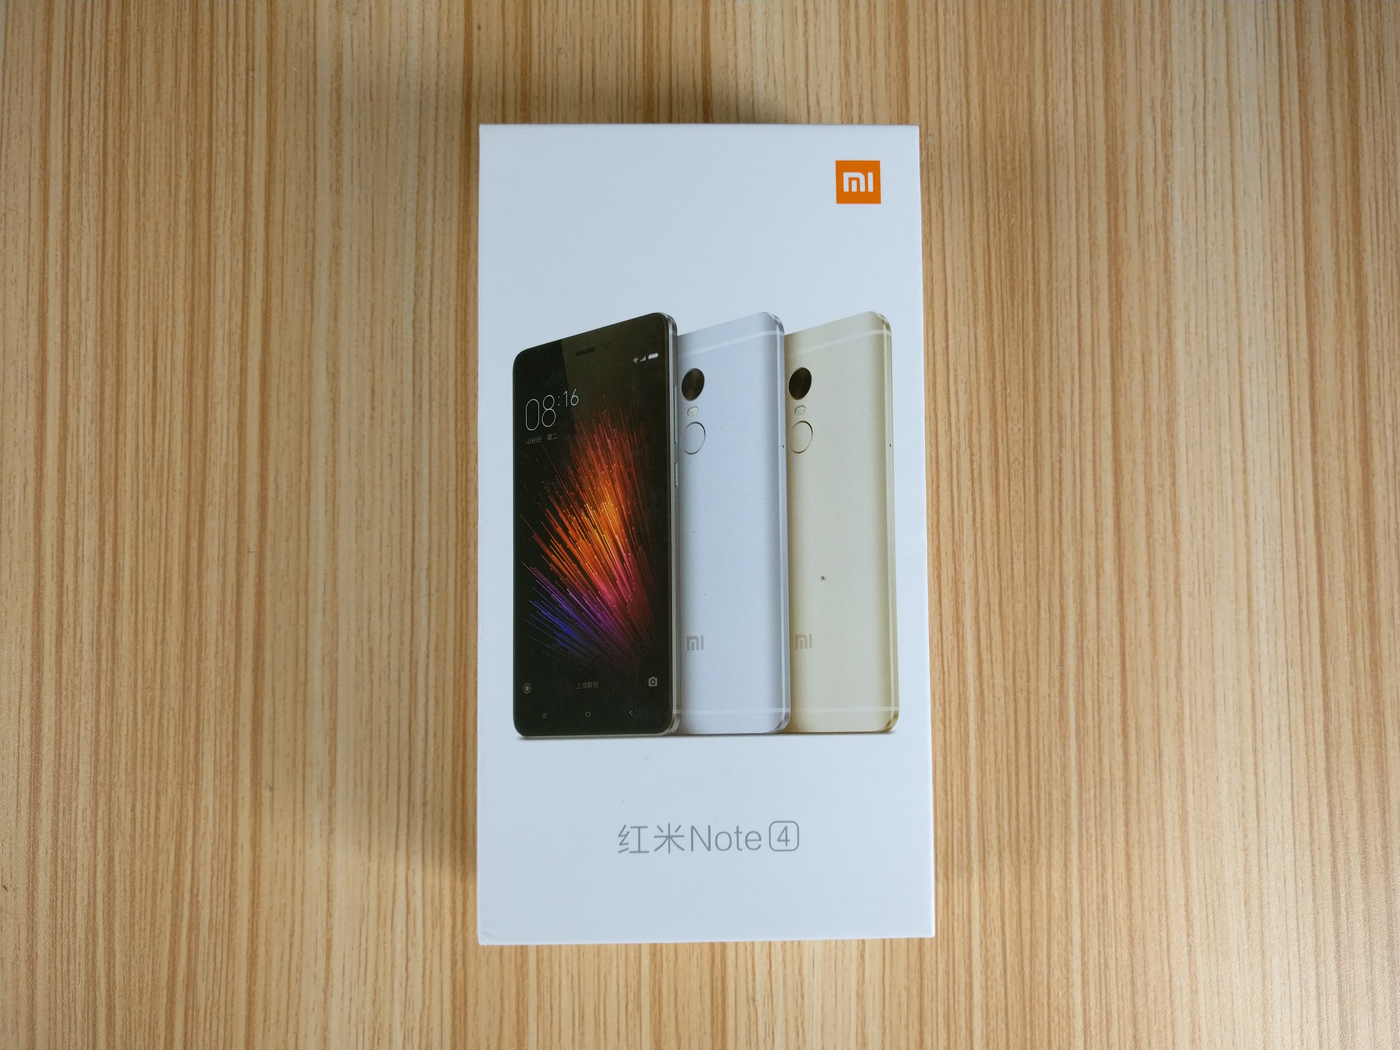 To2ccom Blog Xiaomi Redmi Note4 Real Life Images Unboxing 3x Ram 2 32gb The Details Of Being Photographed Colorgold Ram4gb Rom64gb